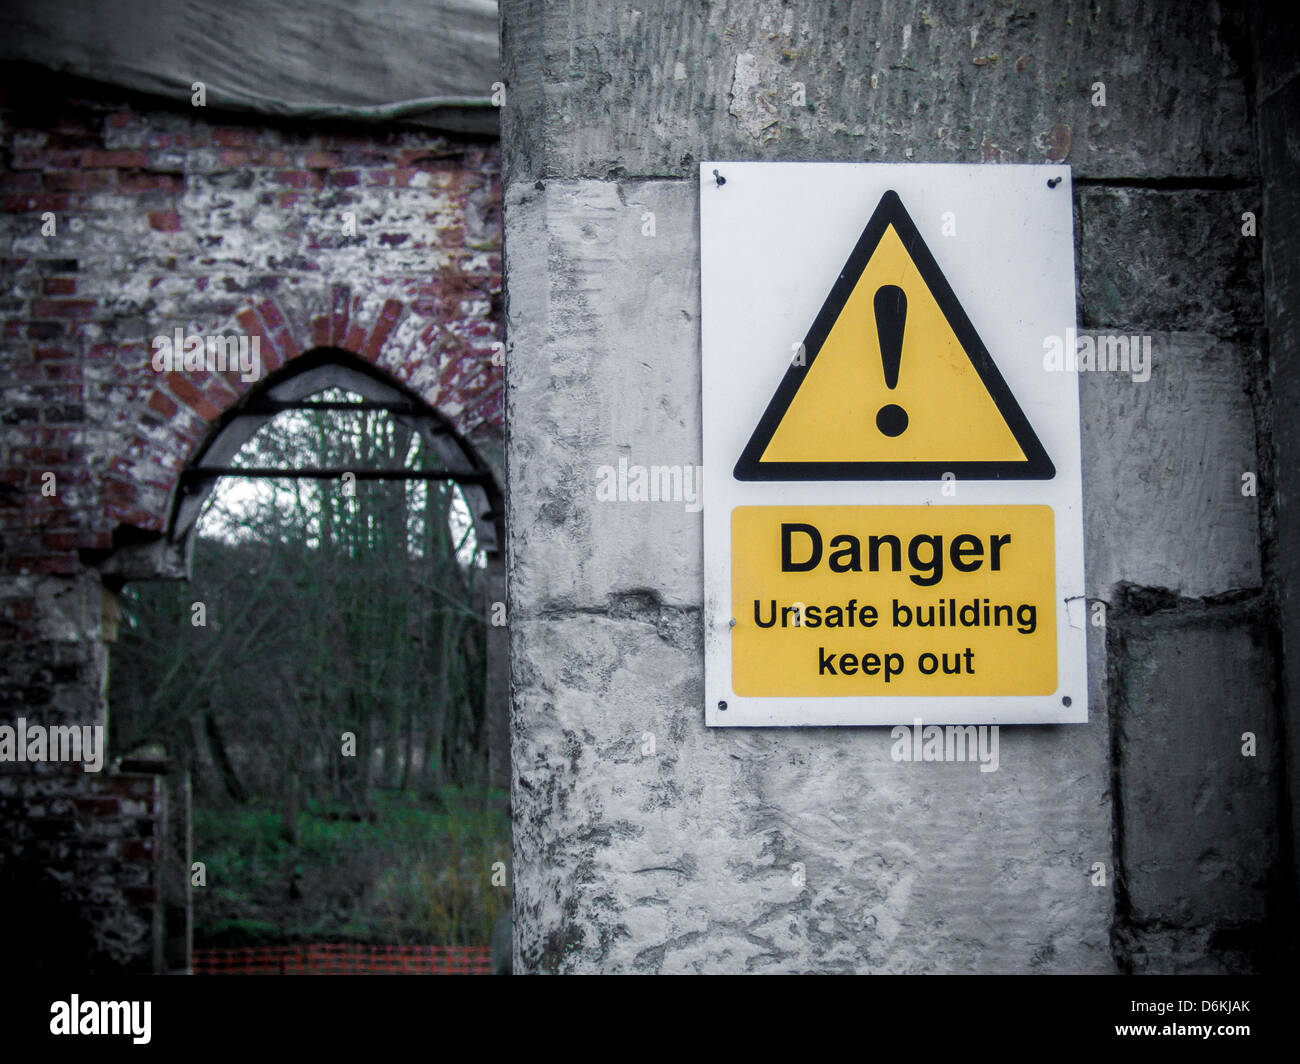 Danger Unsafe Building sign - Keep Out - Stock Image